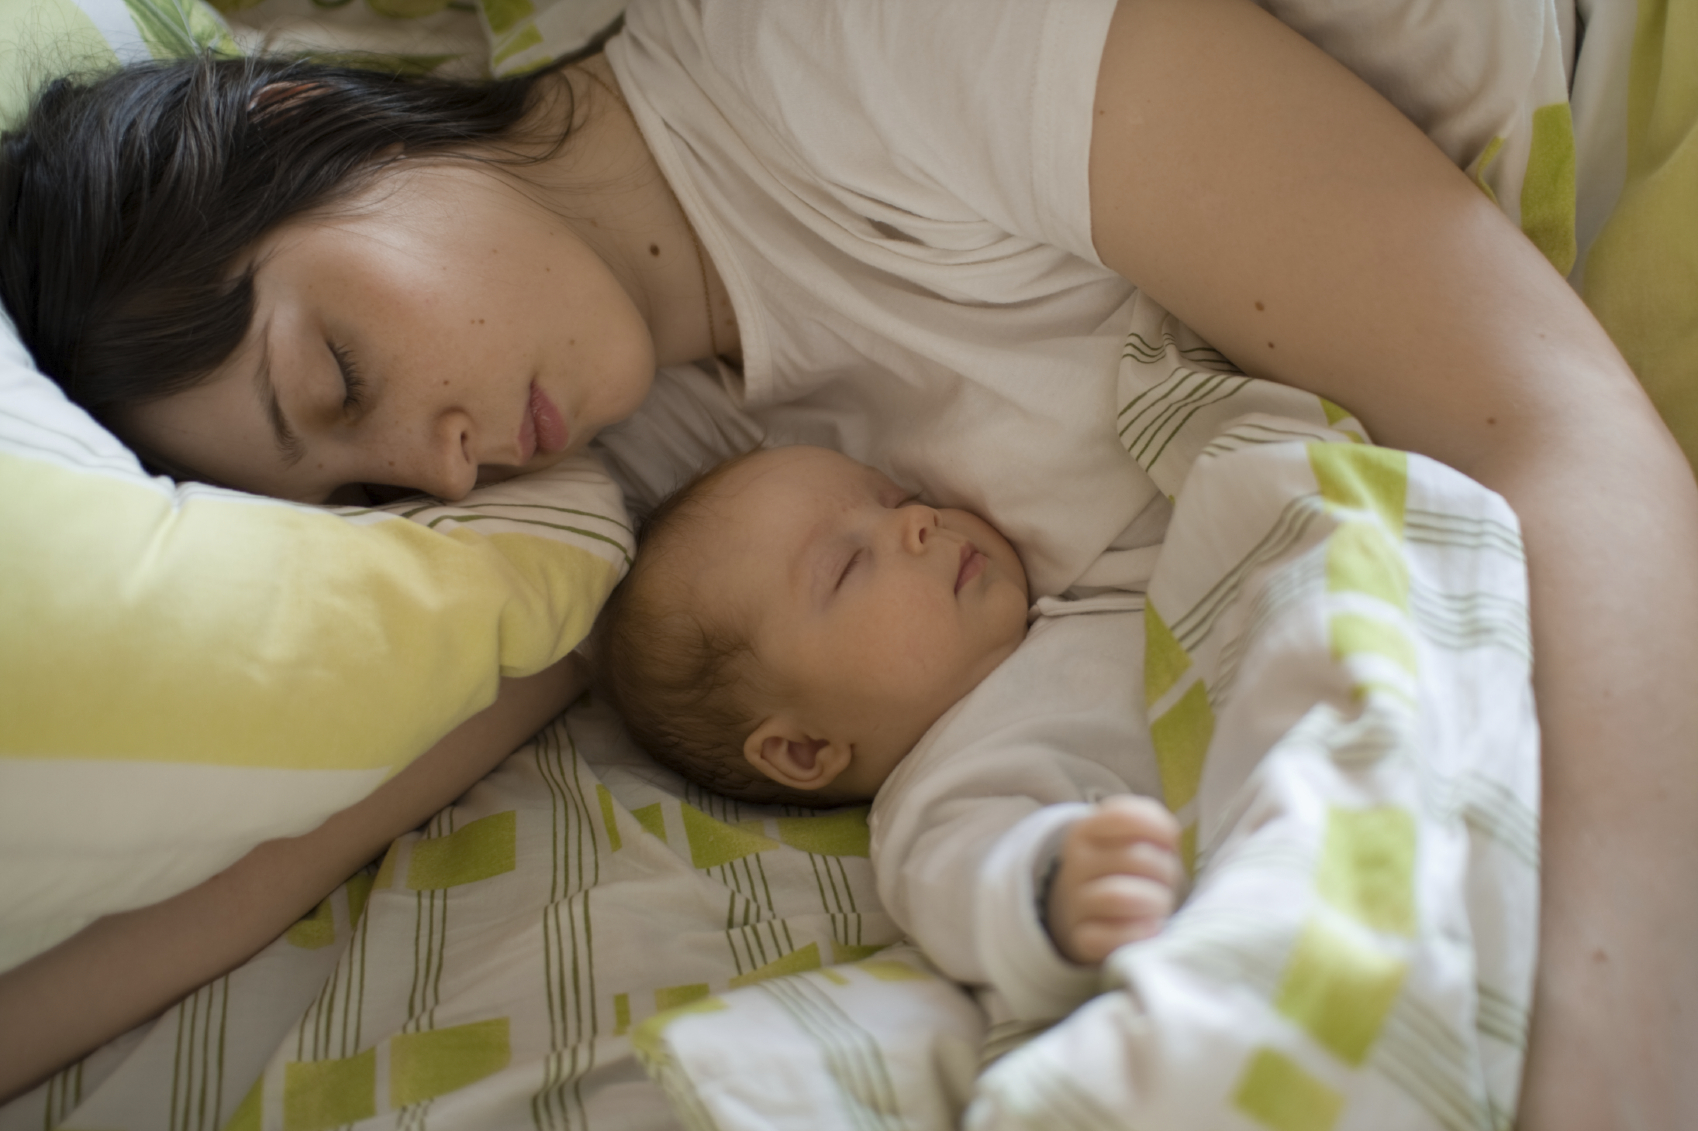 breastfeeding and co sleeping Sleeping behaviour co-sleeping, breastfeeding and sudden infant death syndrome james j mckenna, phd, lee t gettler, ma university of notre dame, usa, northwestern university, usa.